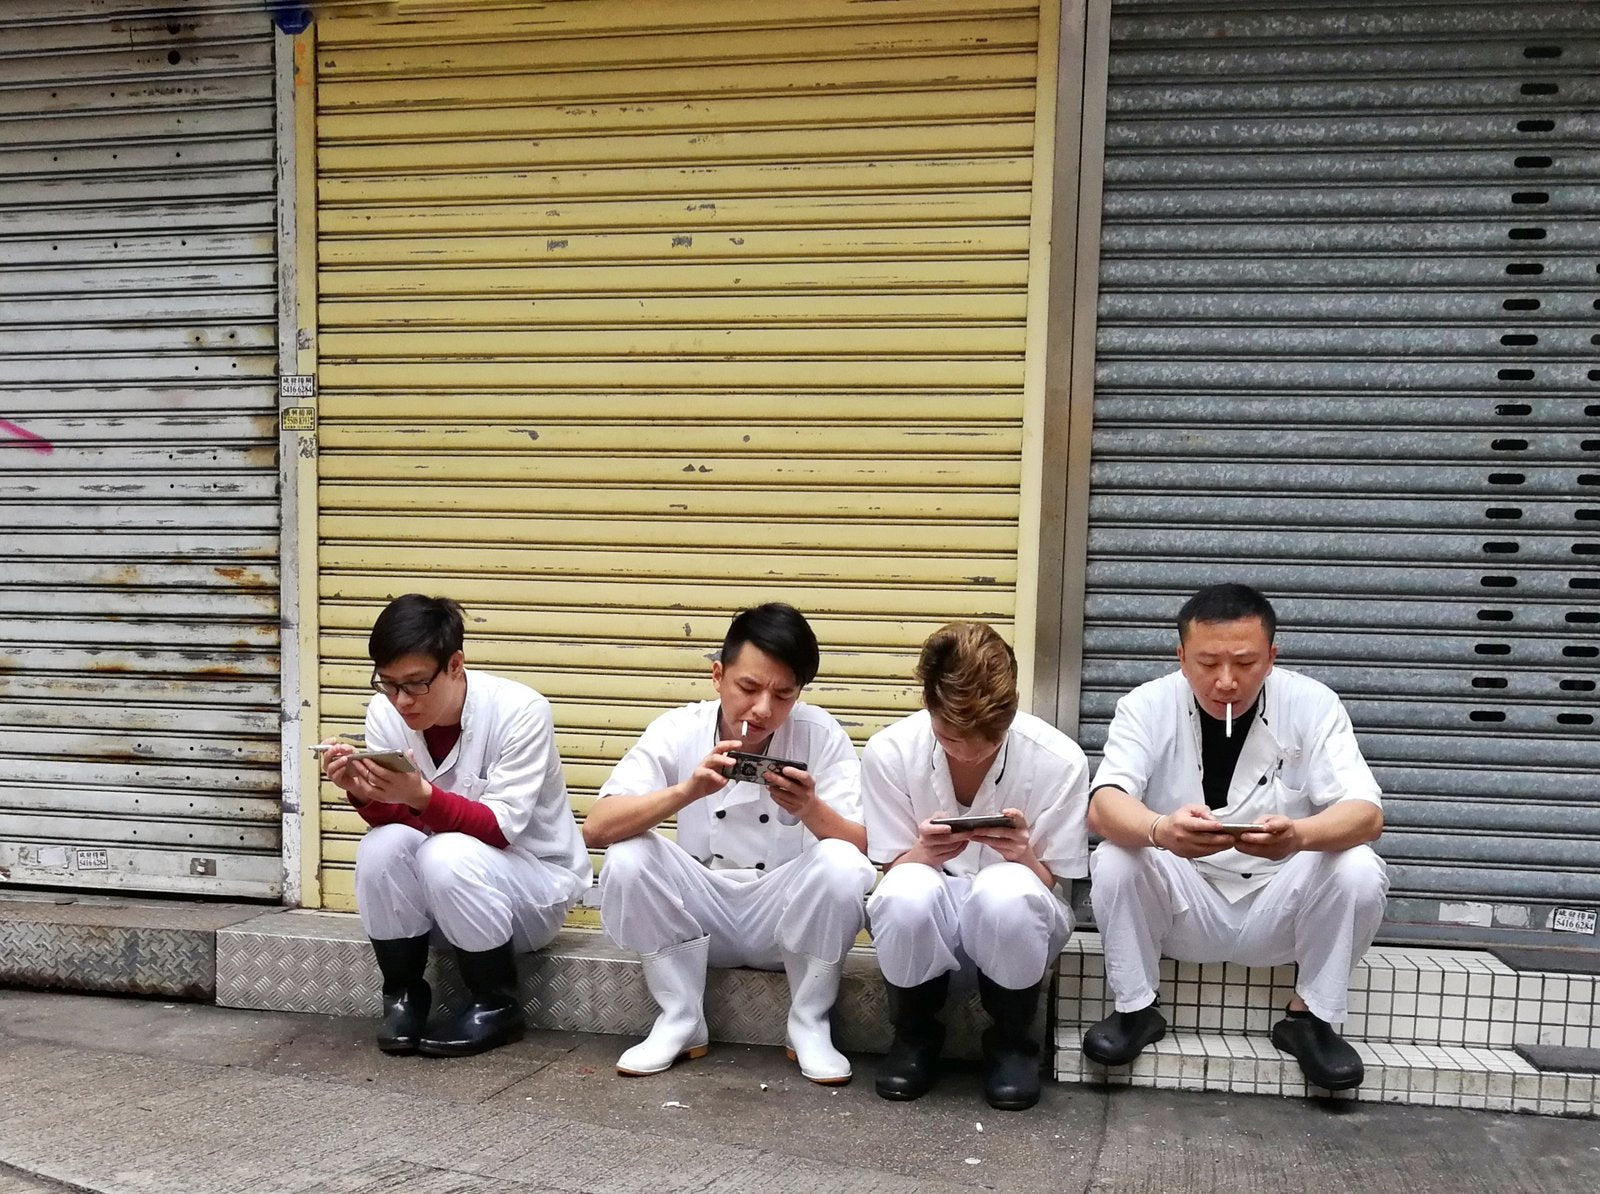 A group of people sitting on a bench watching their phone